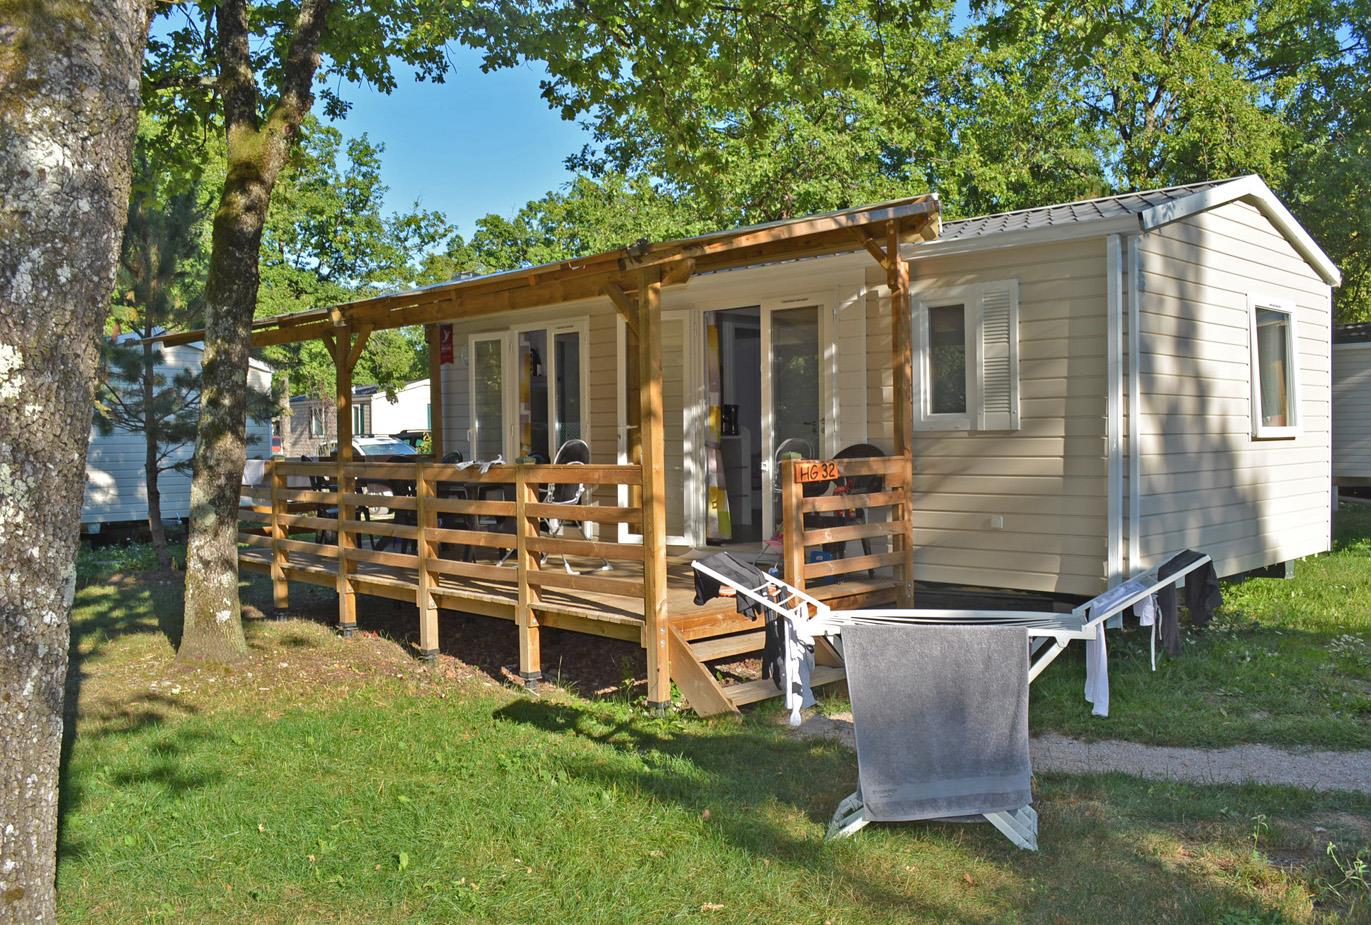 Location - Mobilhome Edelweiss (5-10Ans) 31M² - Terrasse Couverte 15M² (2 Chambres) - Camping Saint-Disdille